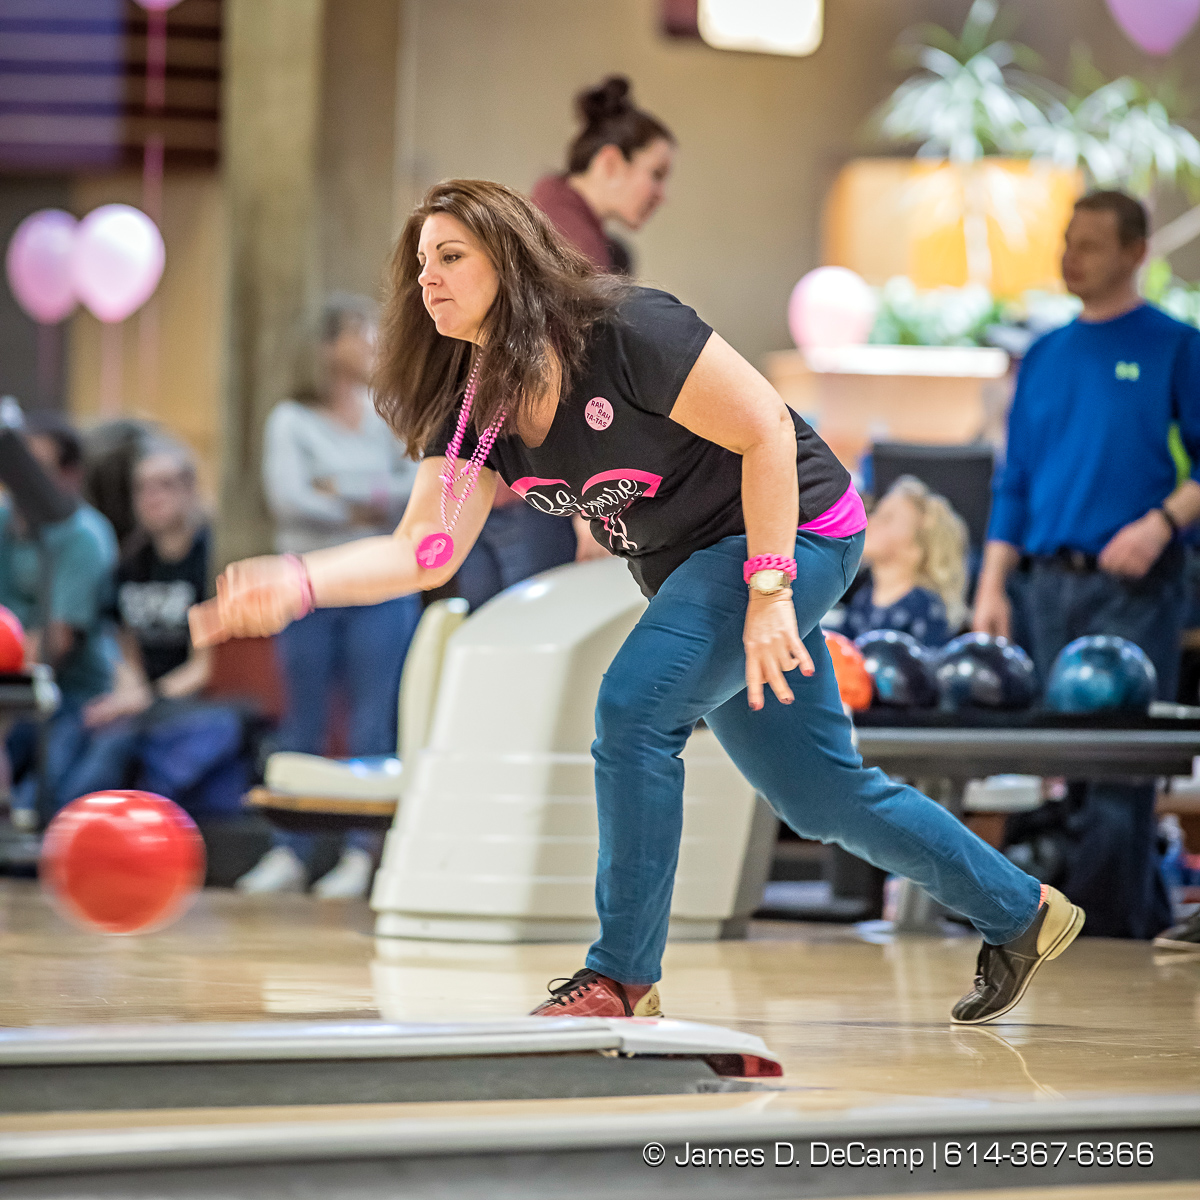 Spare Nothing for the Cure photographed Sunday, February 26, 2017 at the Columbus Square Bowling Palace. (© James D. DeCamp | http://JamesDeCamp.com | 614-367-6366)